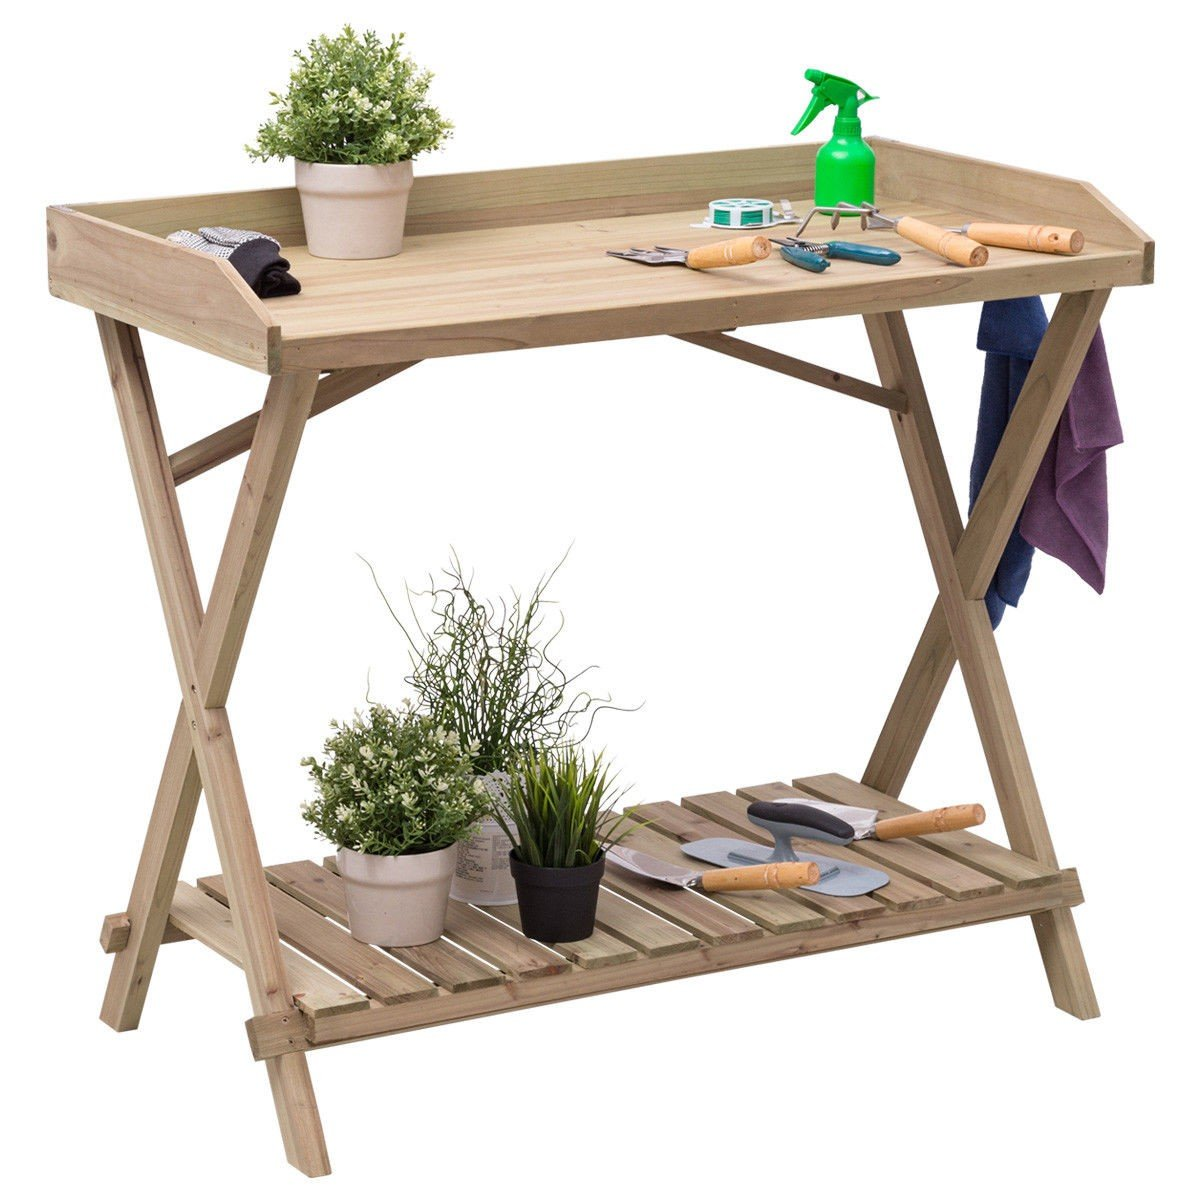 Patio Wood Display Potting Bench Table - By Choice Products by By Choice Products